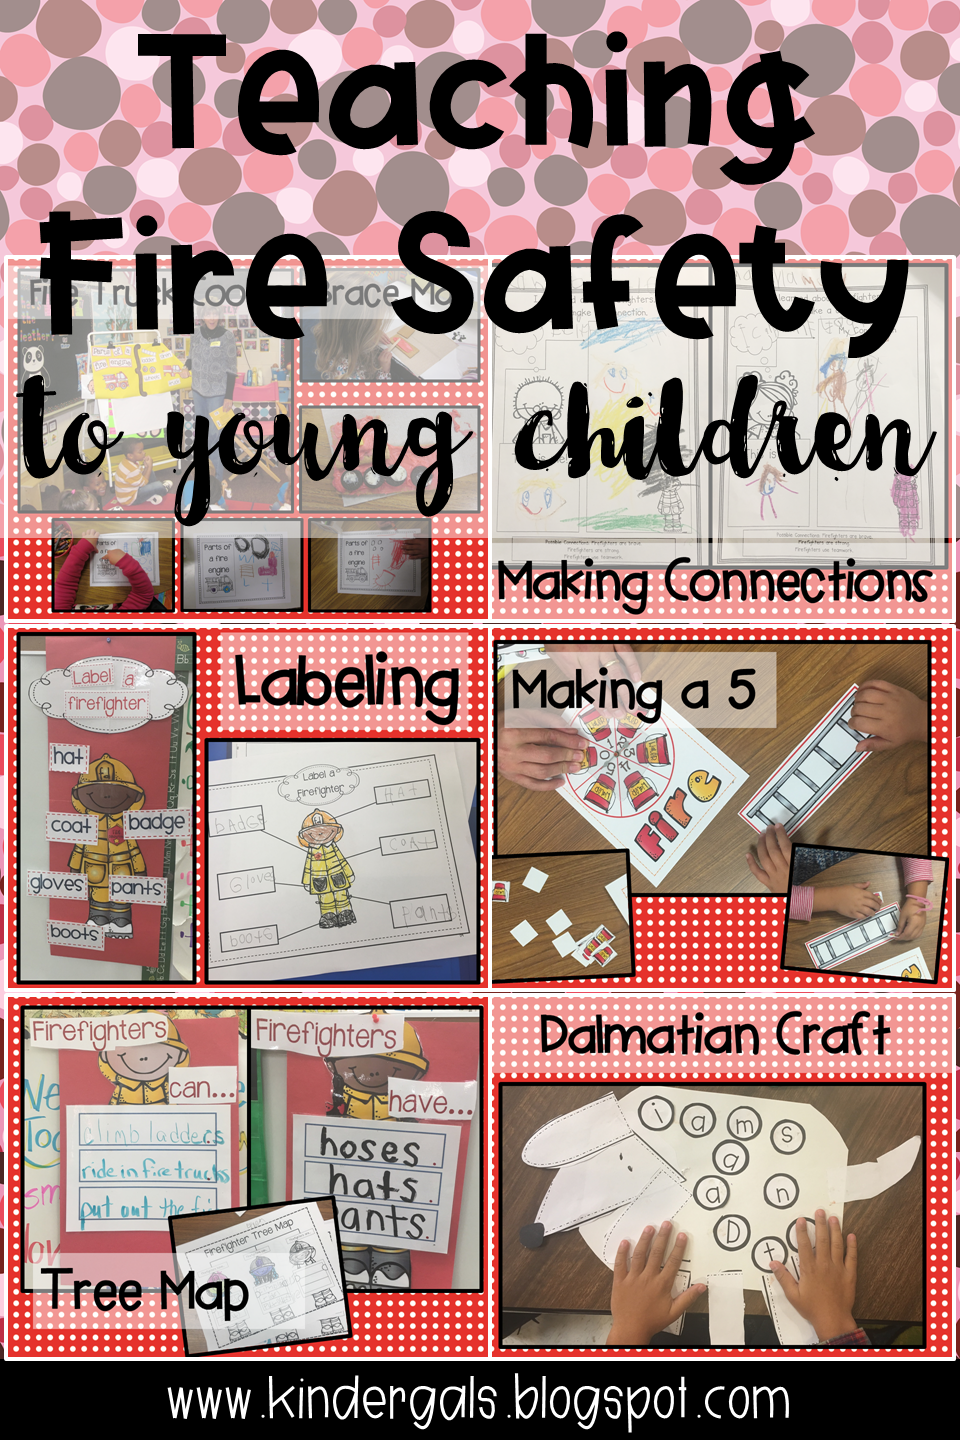 What kind of craft do with the child on the topic of Fire Safety